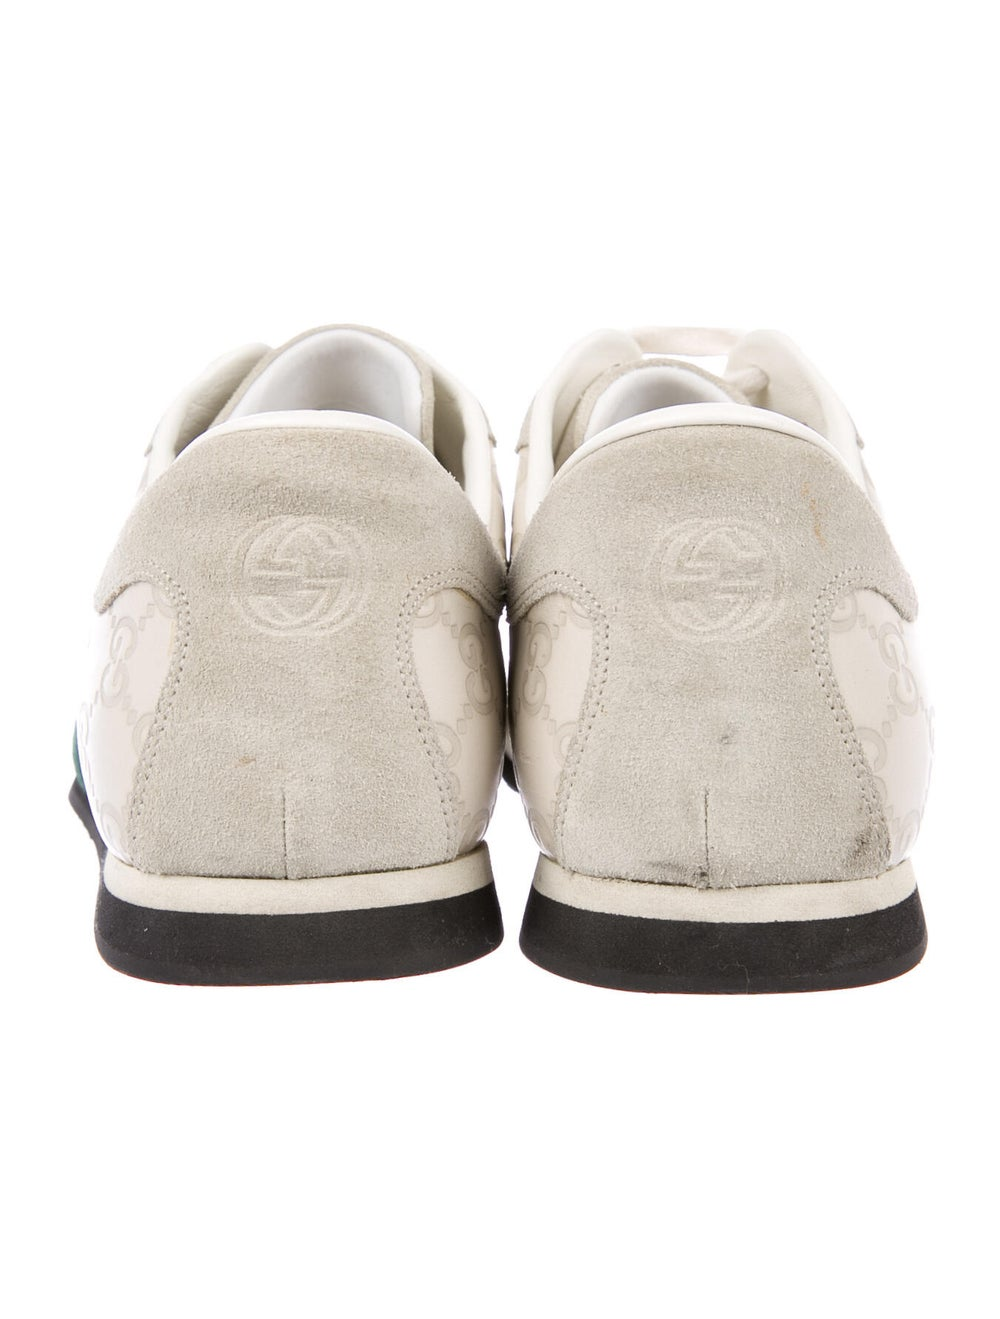 Gucci Web Accent Leather Sneakers - image 4